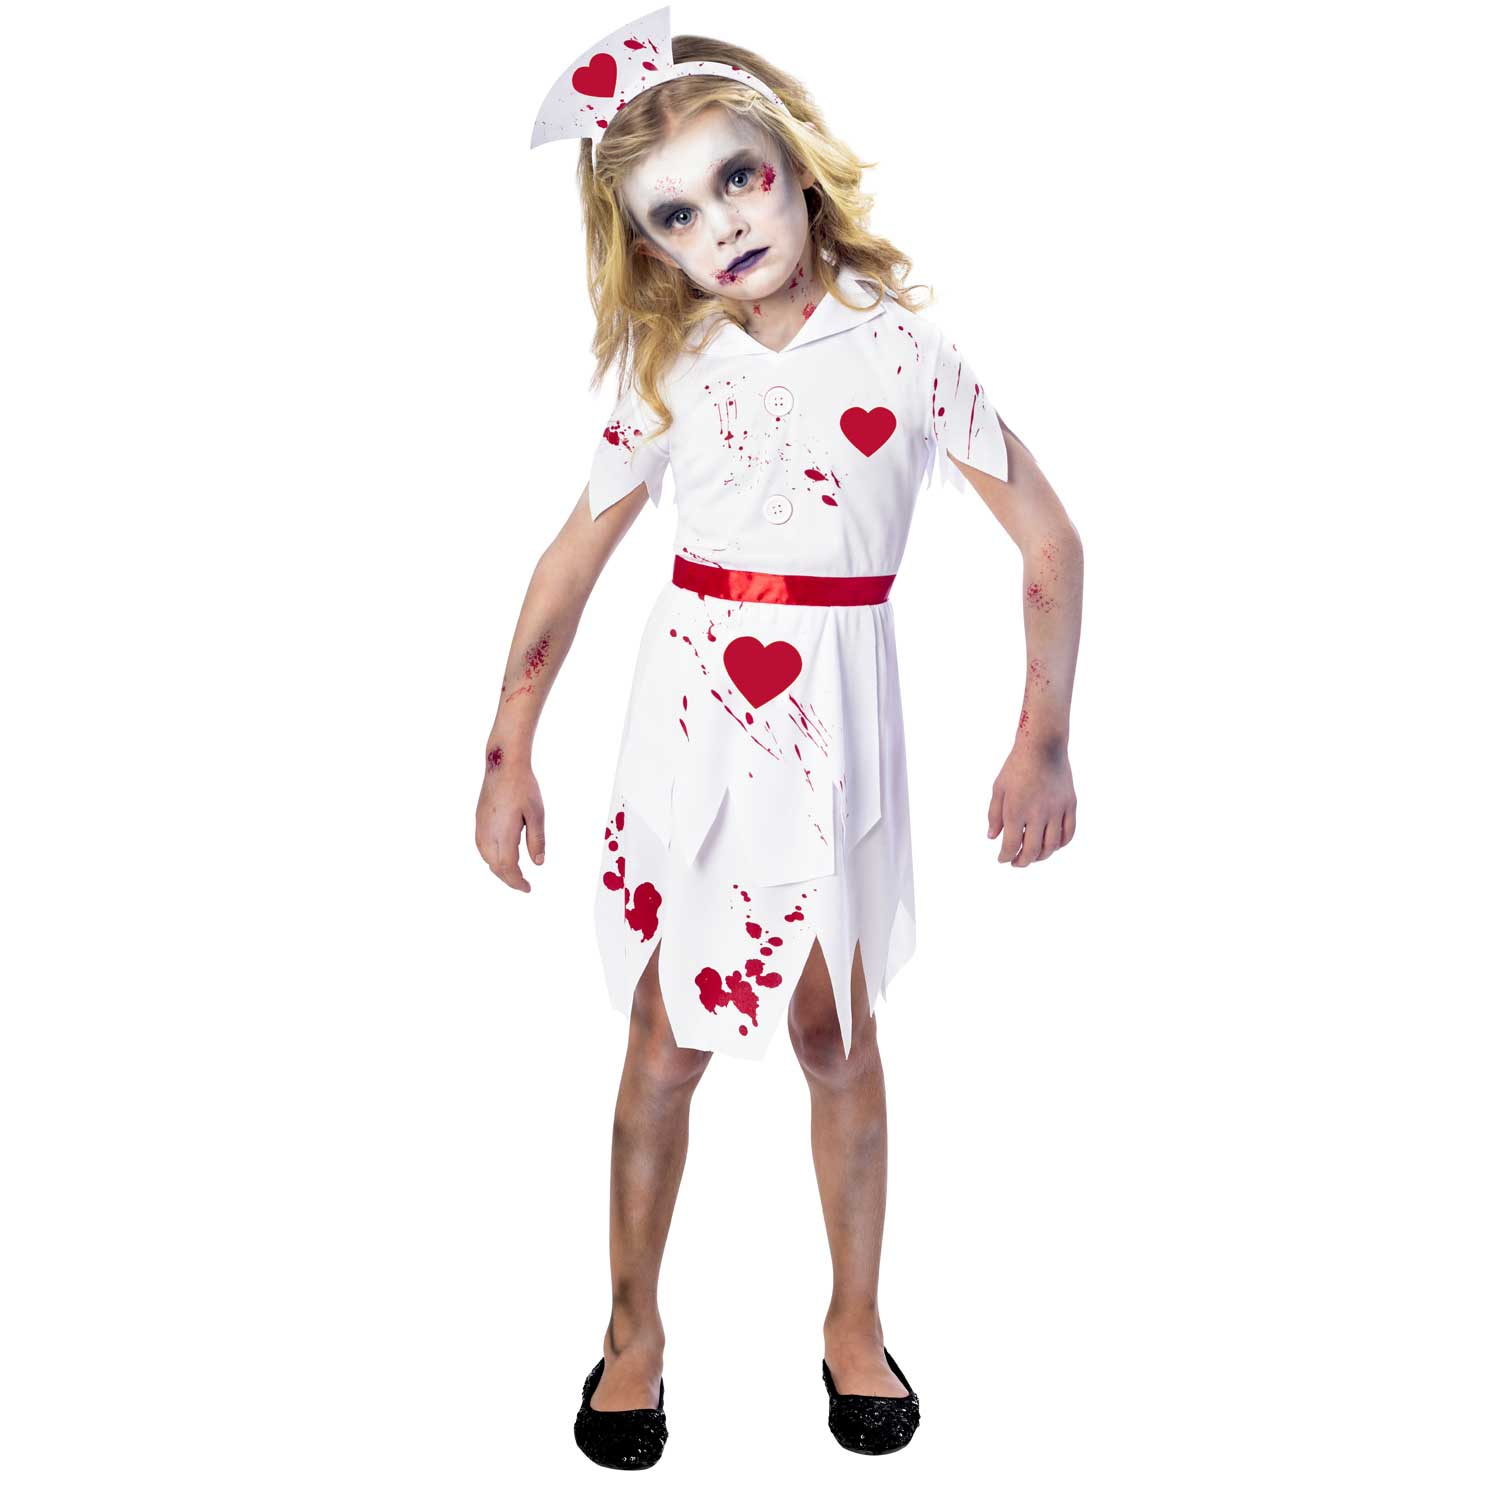 zombie nurse costume - age 11-12 years - 1 pc : amscan international